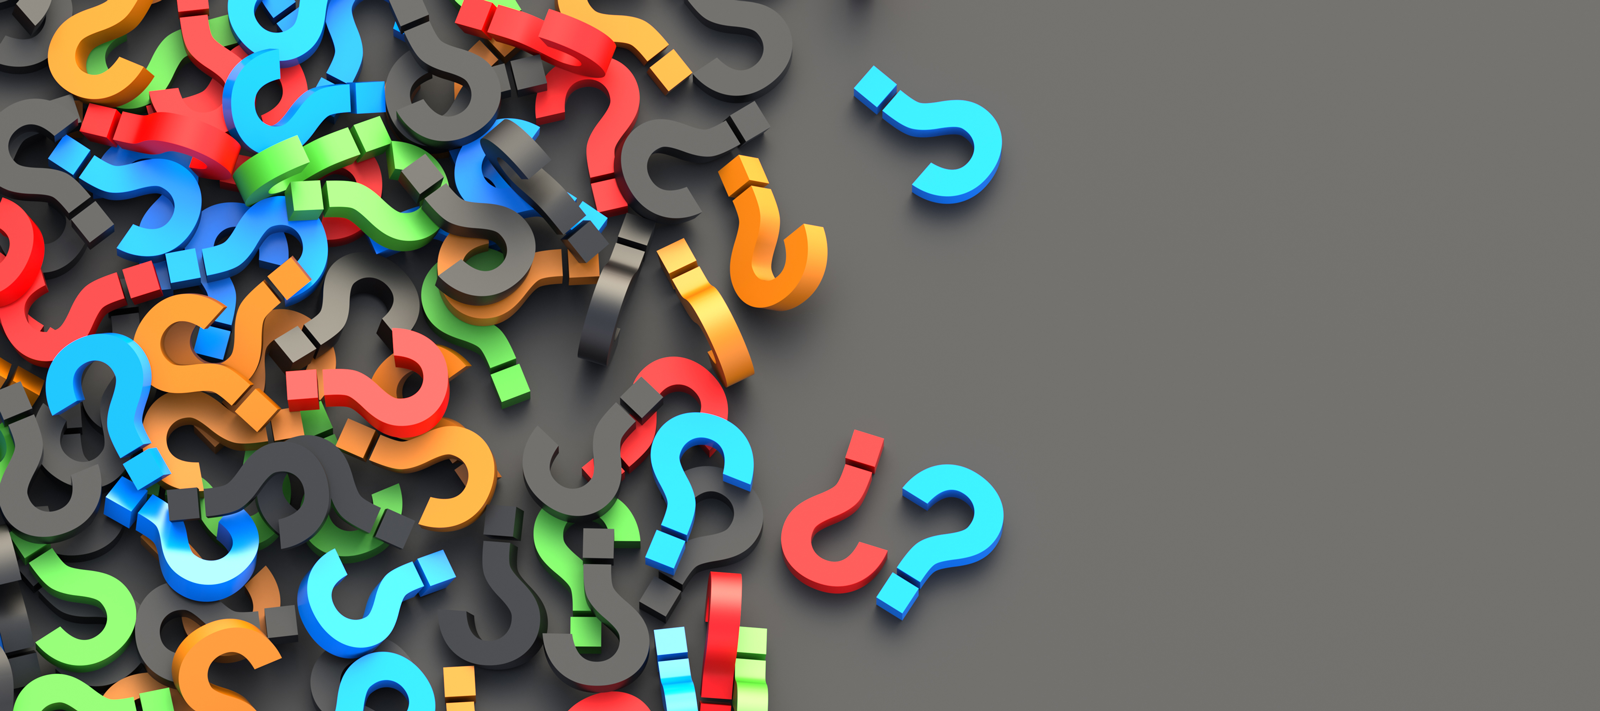 Colorful question mark banner image